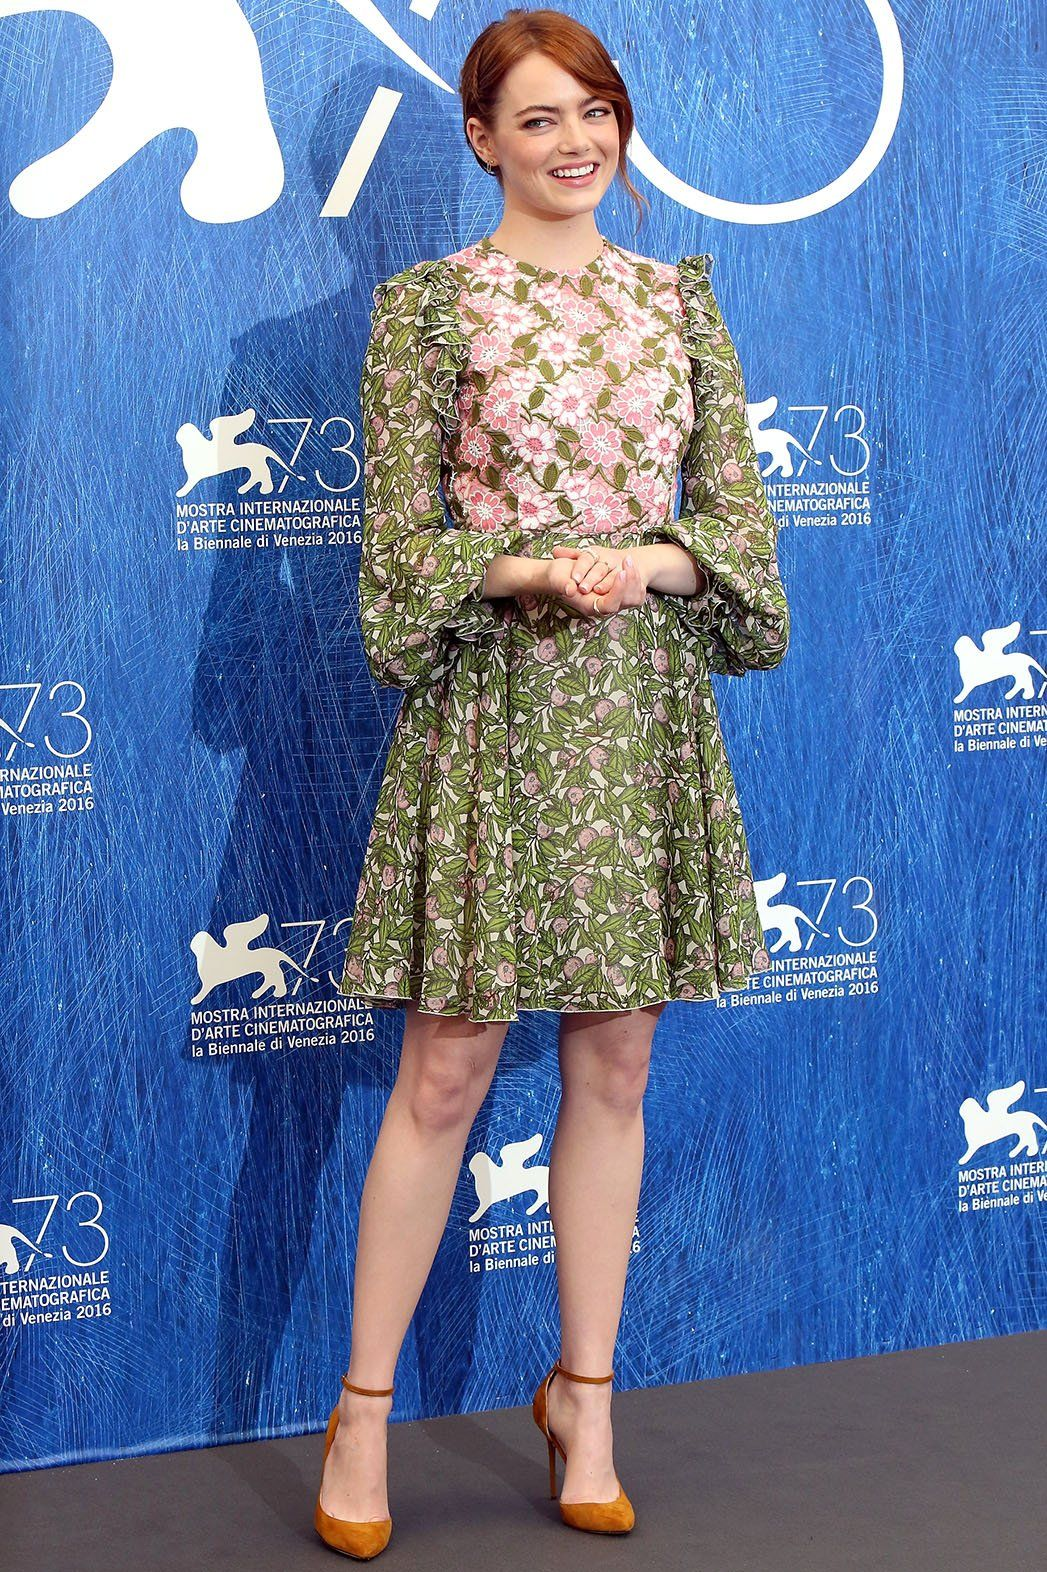 Emma Stone in Giambattista Valli at the La La Land premiere @Venice Film Festival